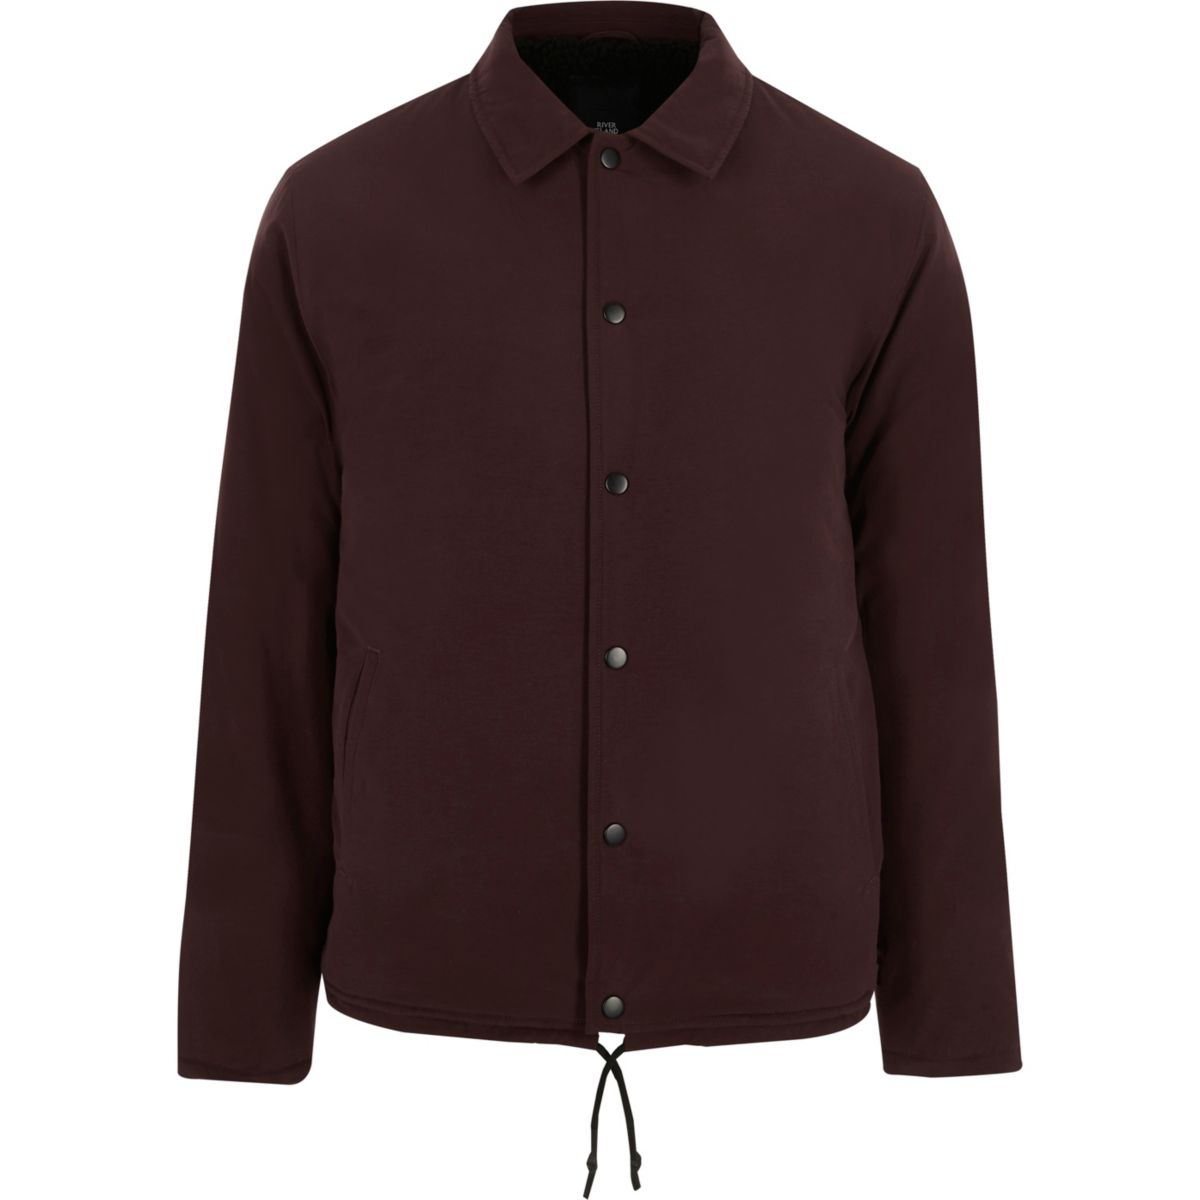 Burgundy Borg Lined Coach Jacket by River Island